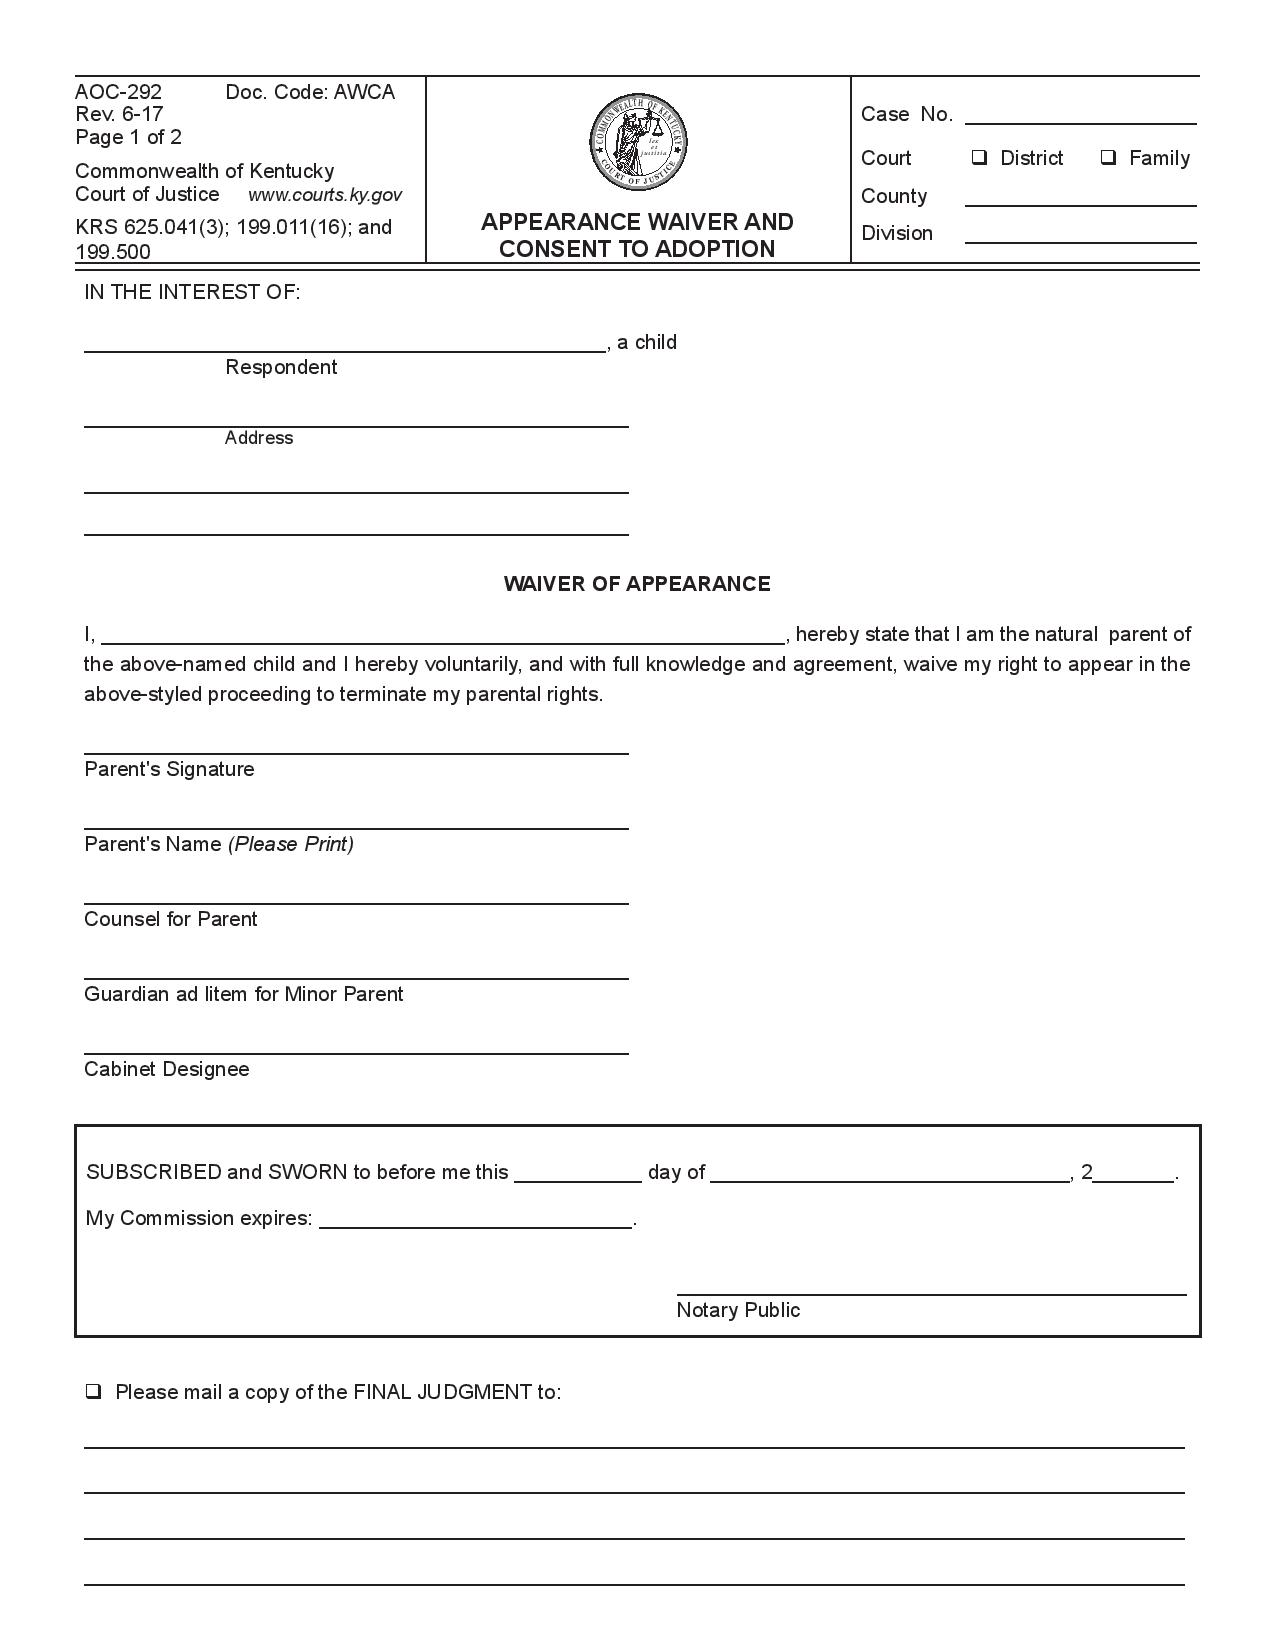 Appearance Waiver And Consent To Adoption Wikiform